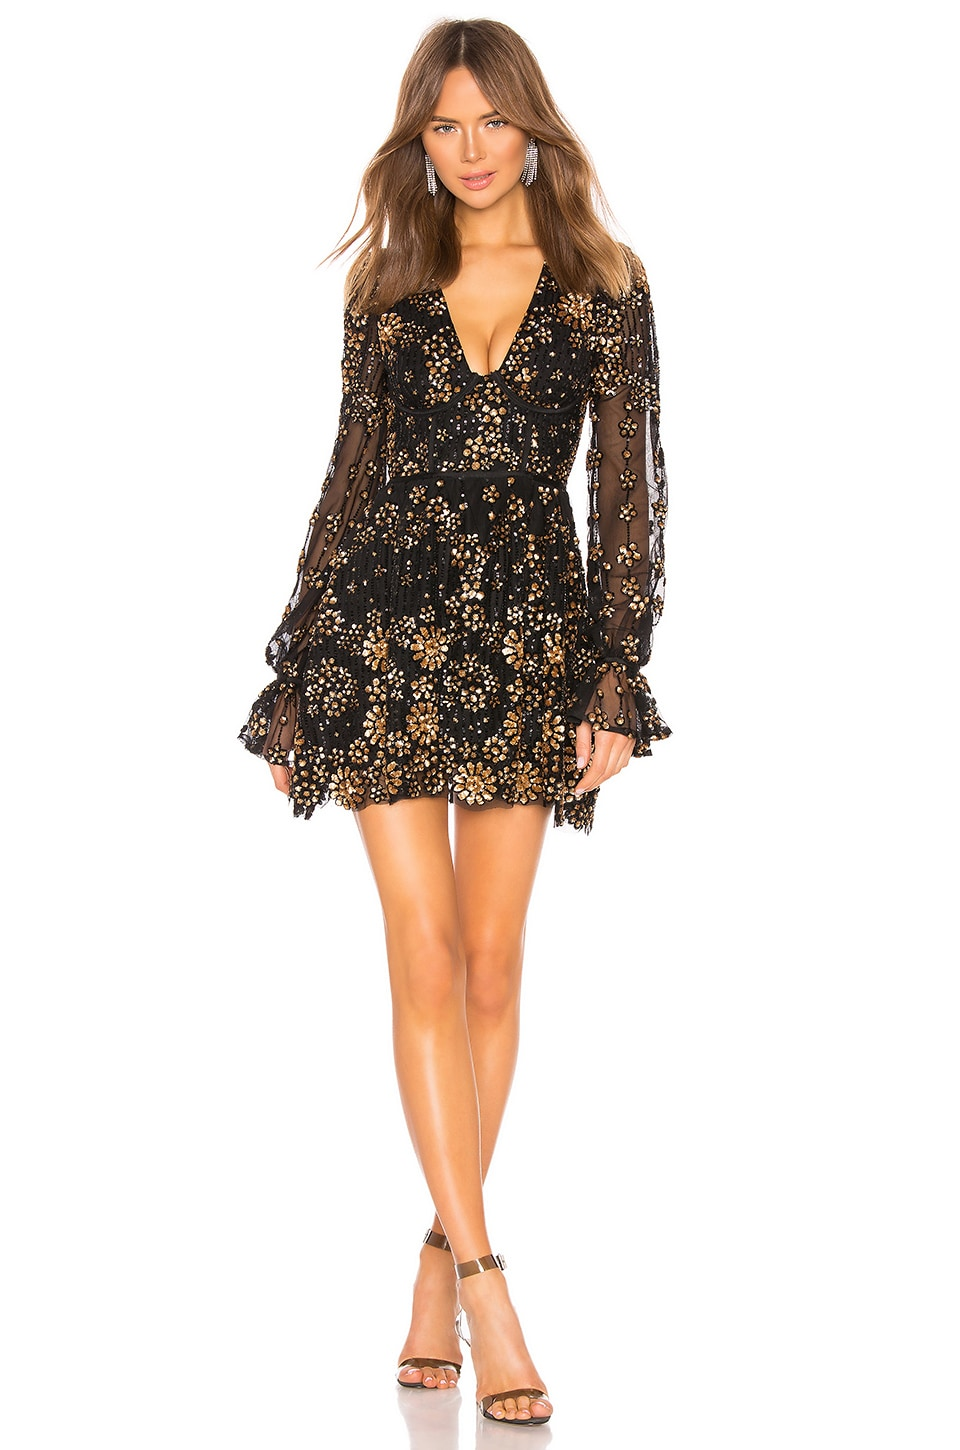 X by NBD Journey Embellished Mini Dress in Gold & Black